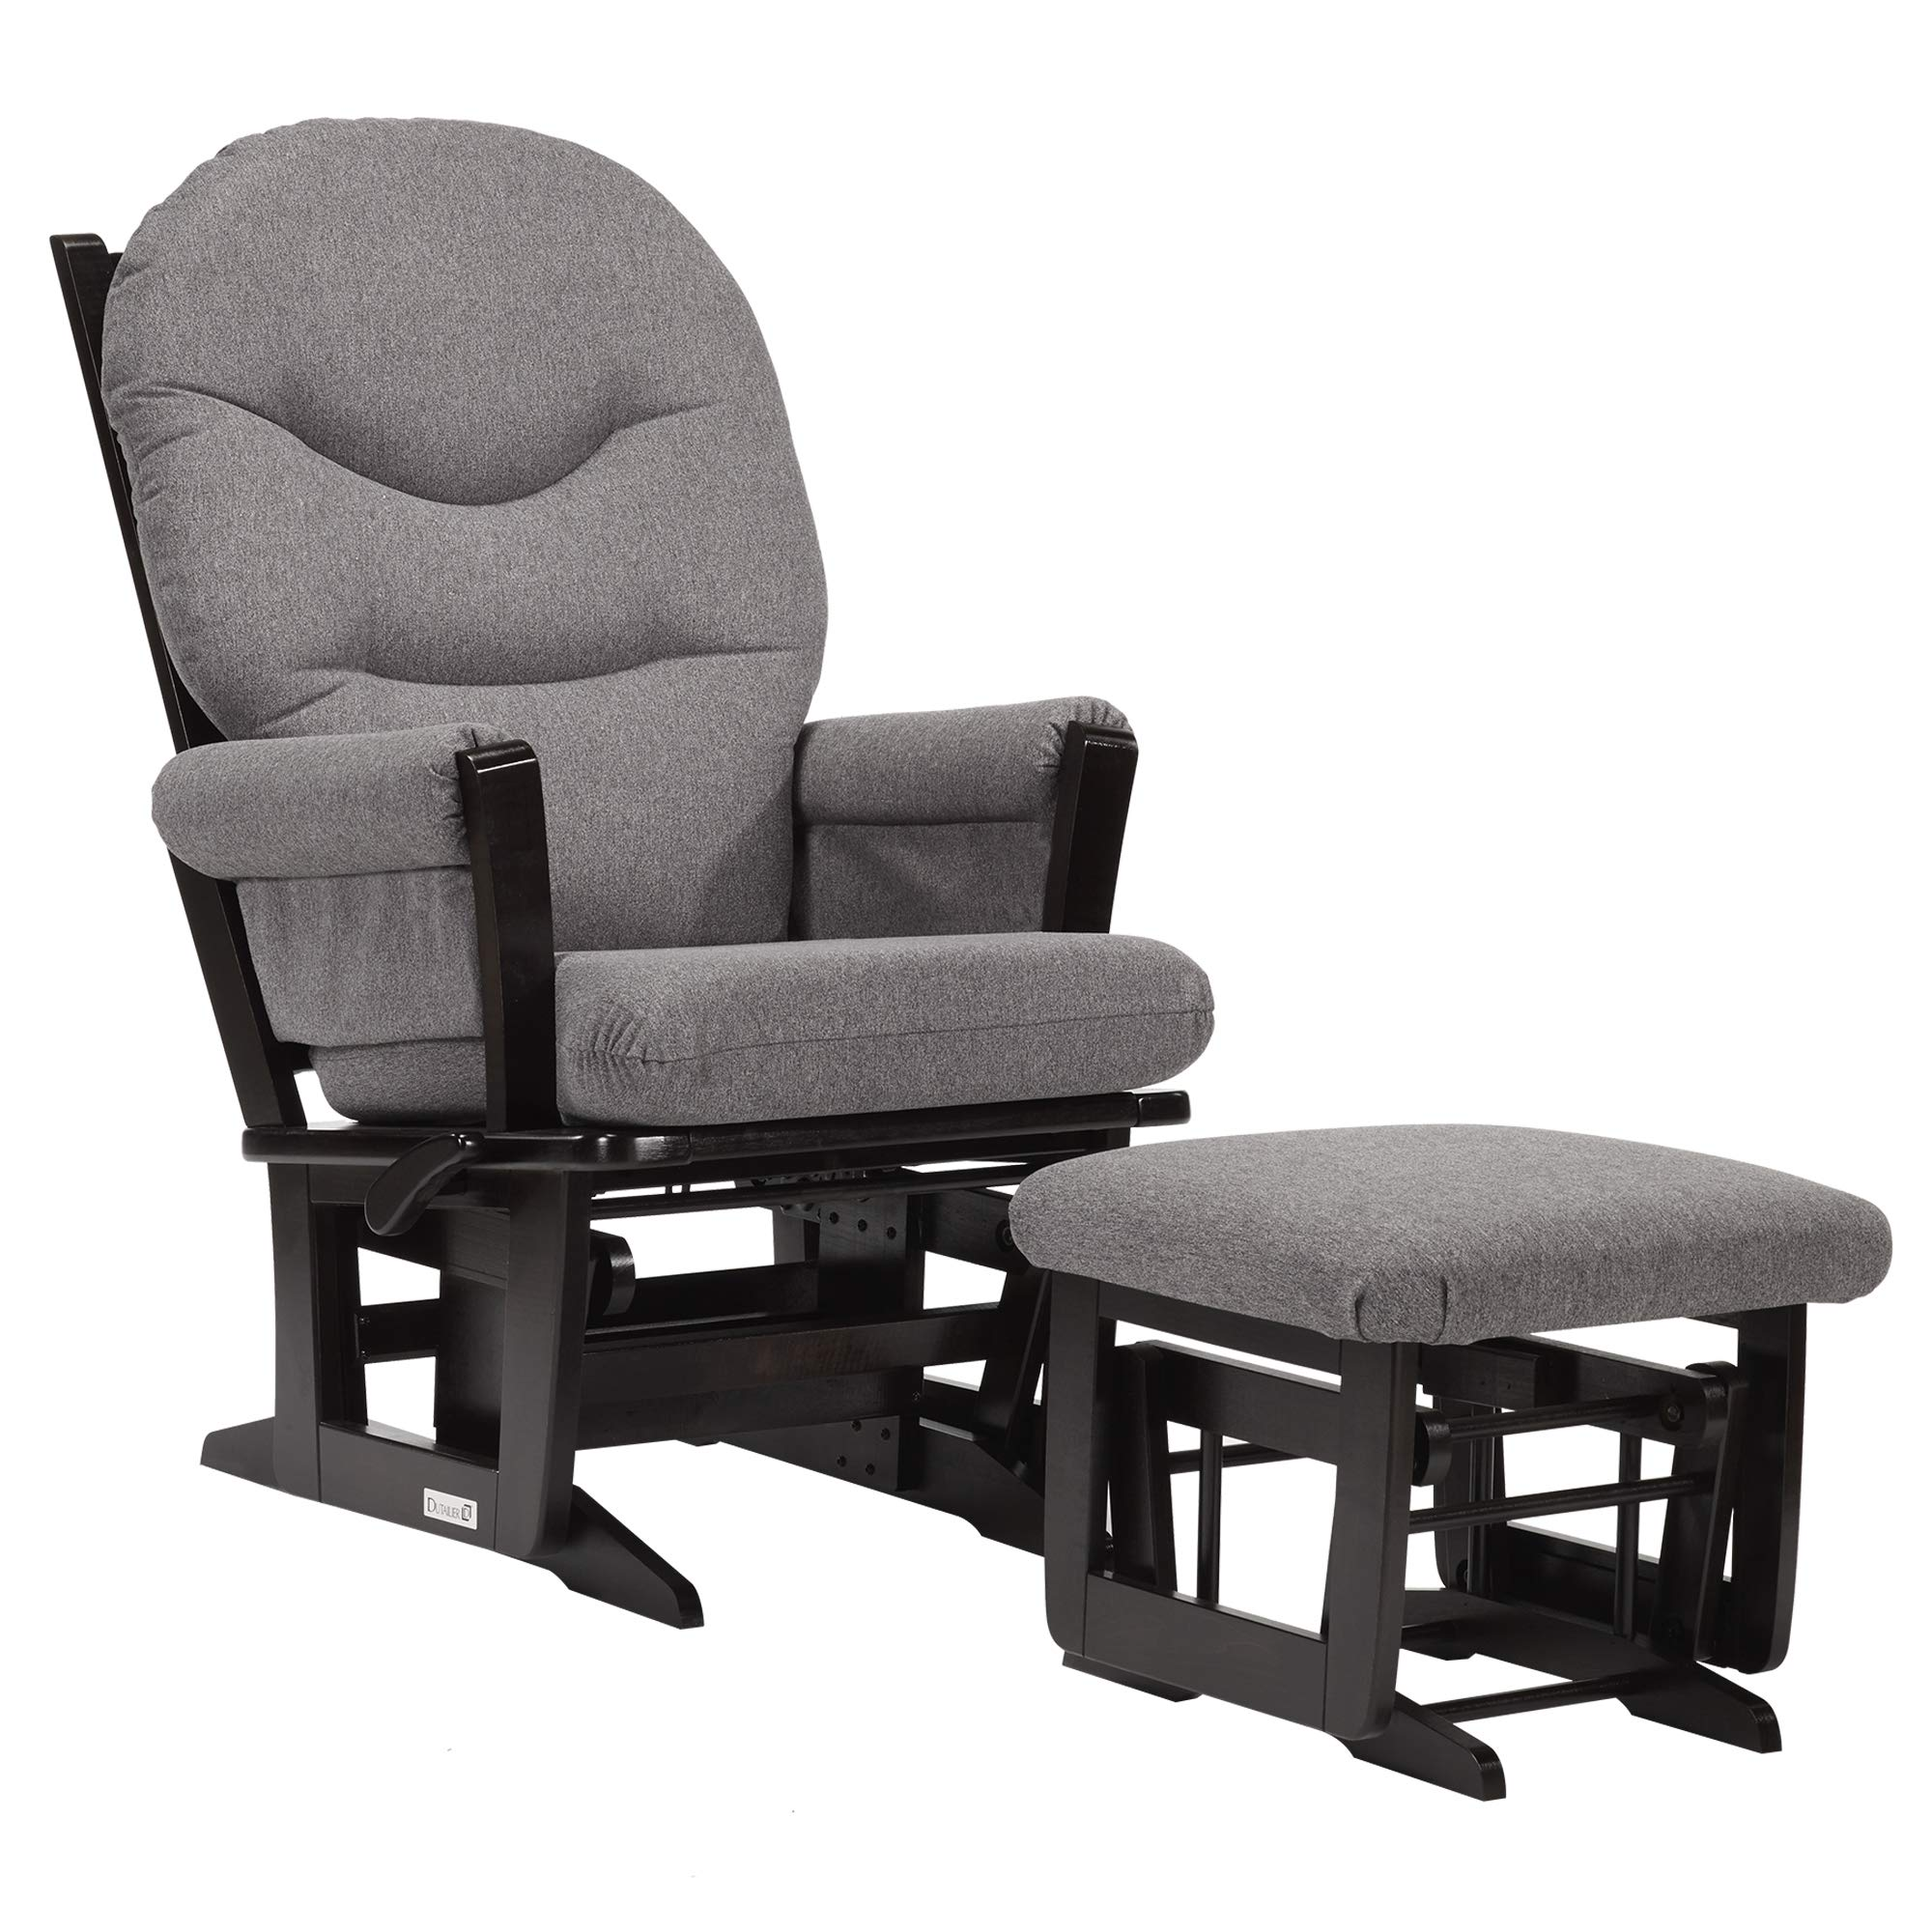 Dutailier Multiposition Lock Recline Ottoman Included